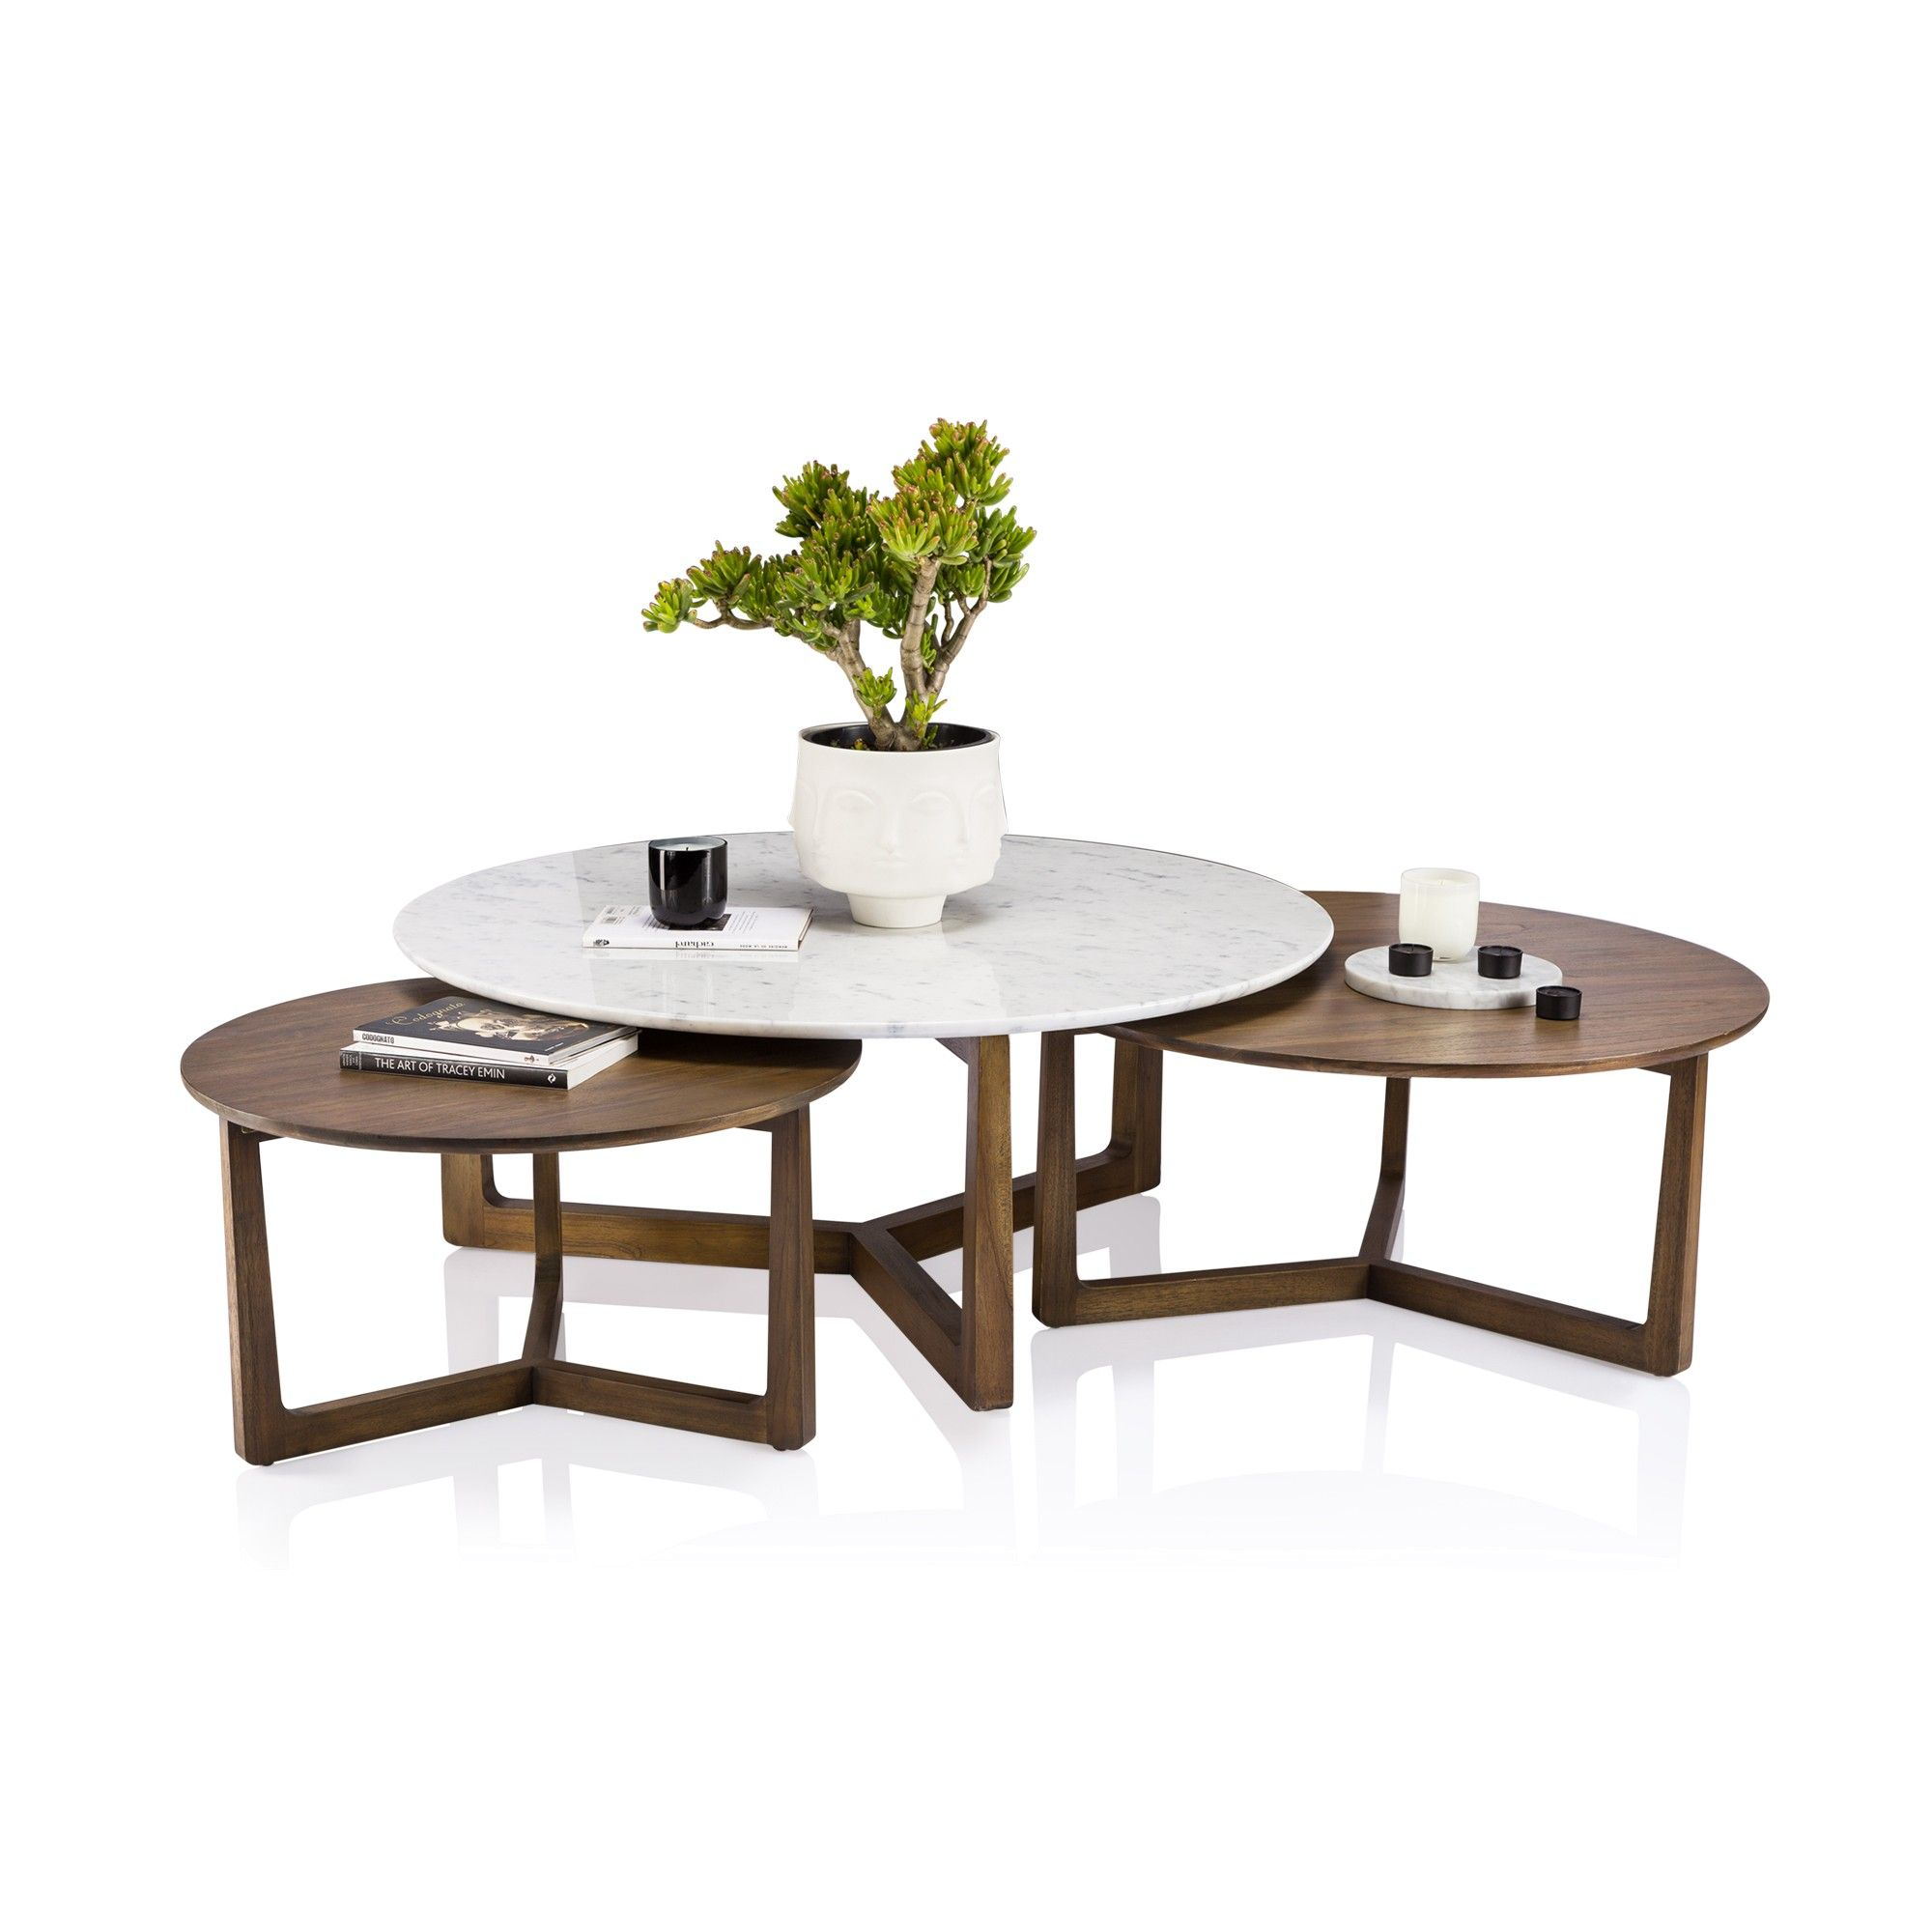 San Francisco Contemporary Interior Design Resource Coffee Table Round Wood Coffee Table Round Coffee Table [ 1200 x 1600 Pixel ]